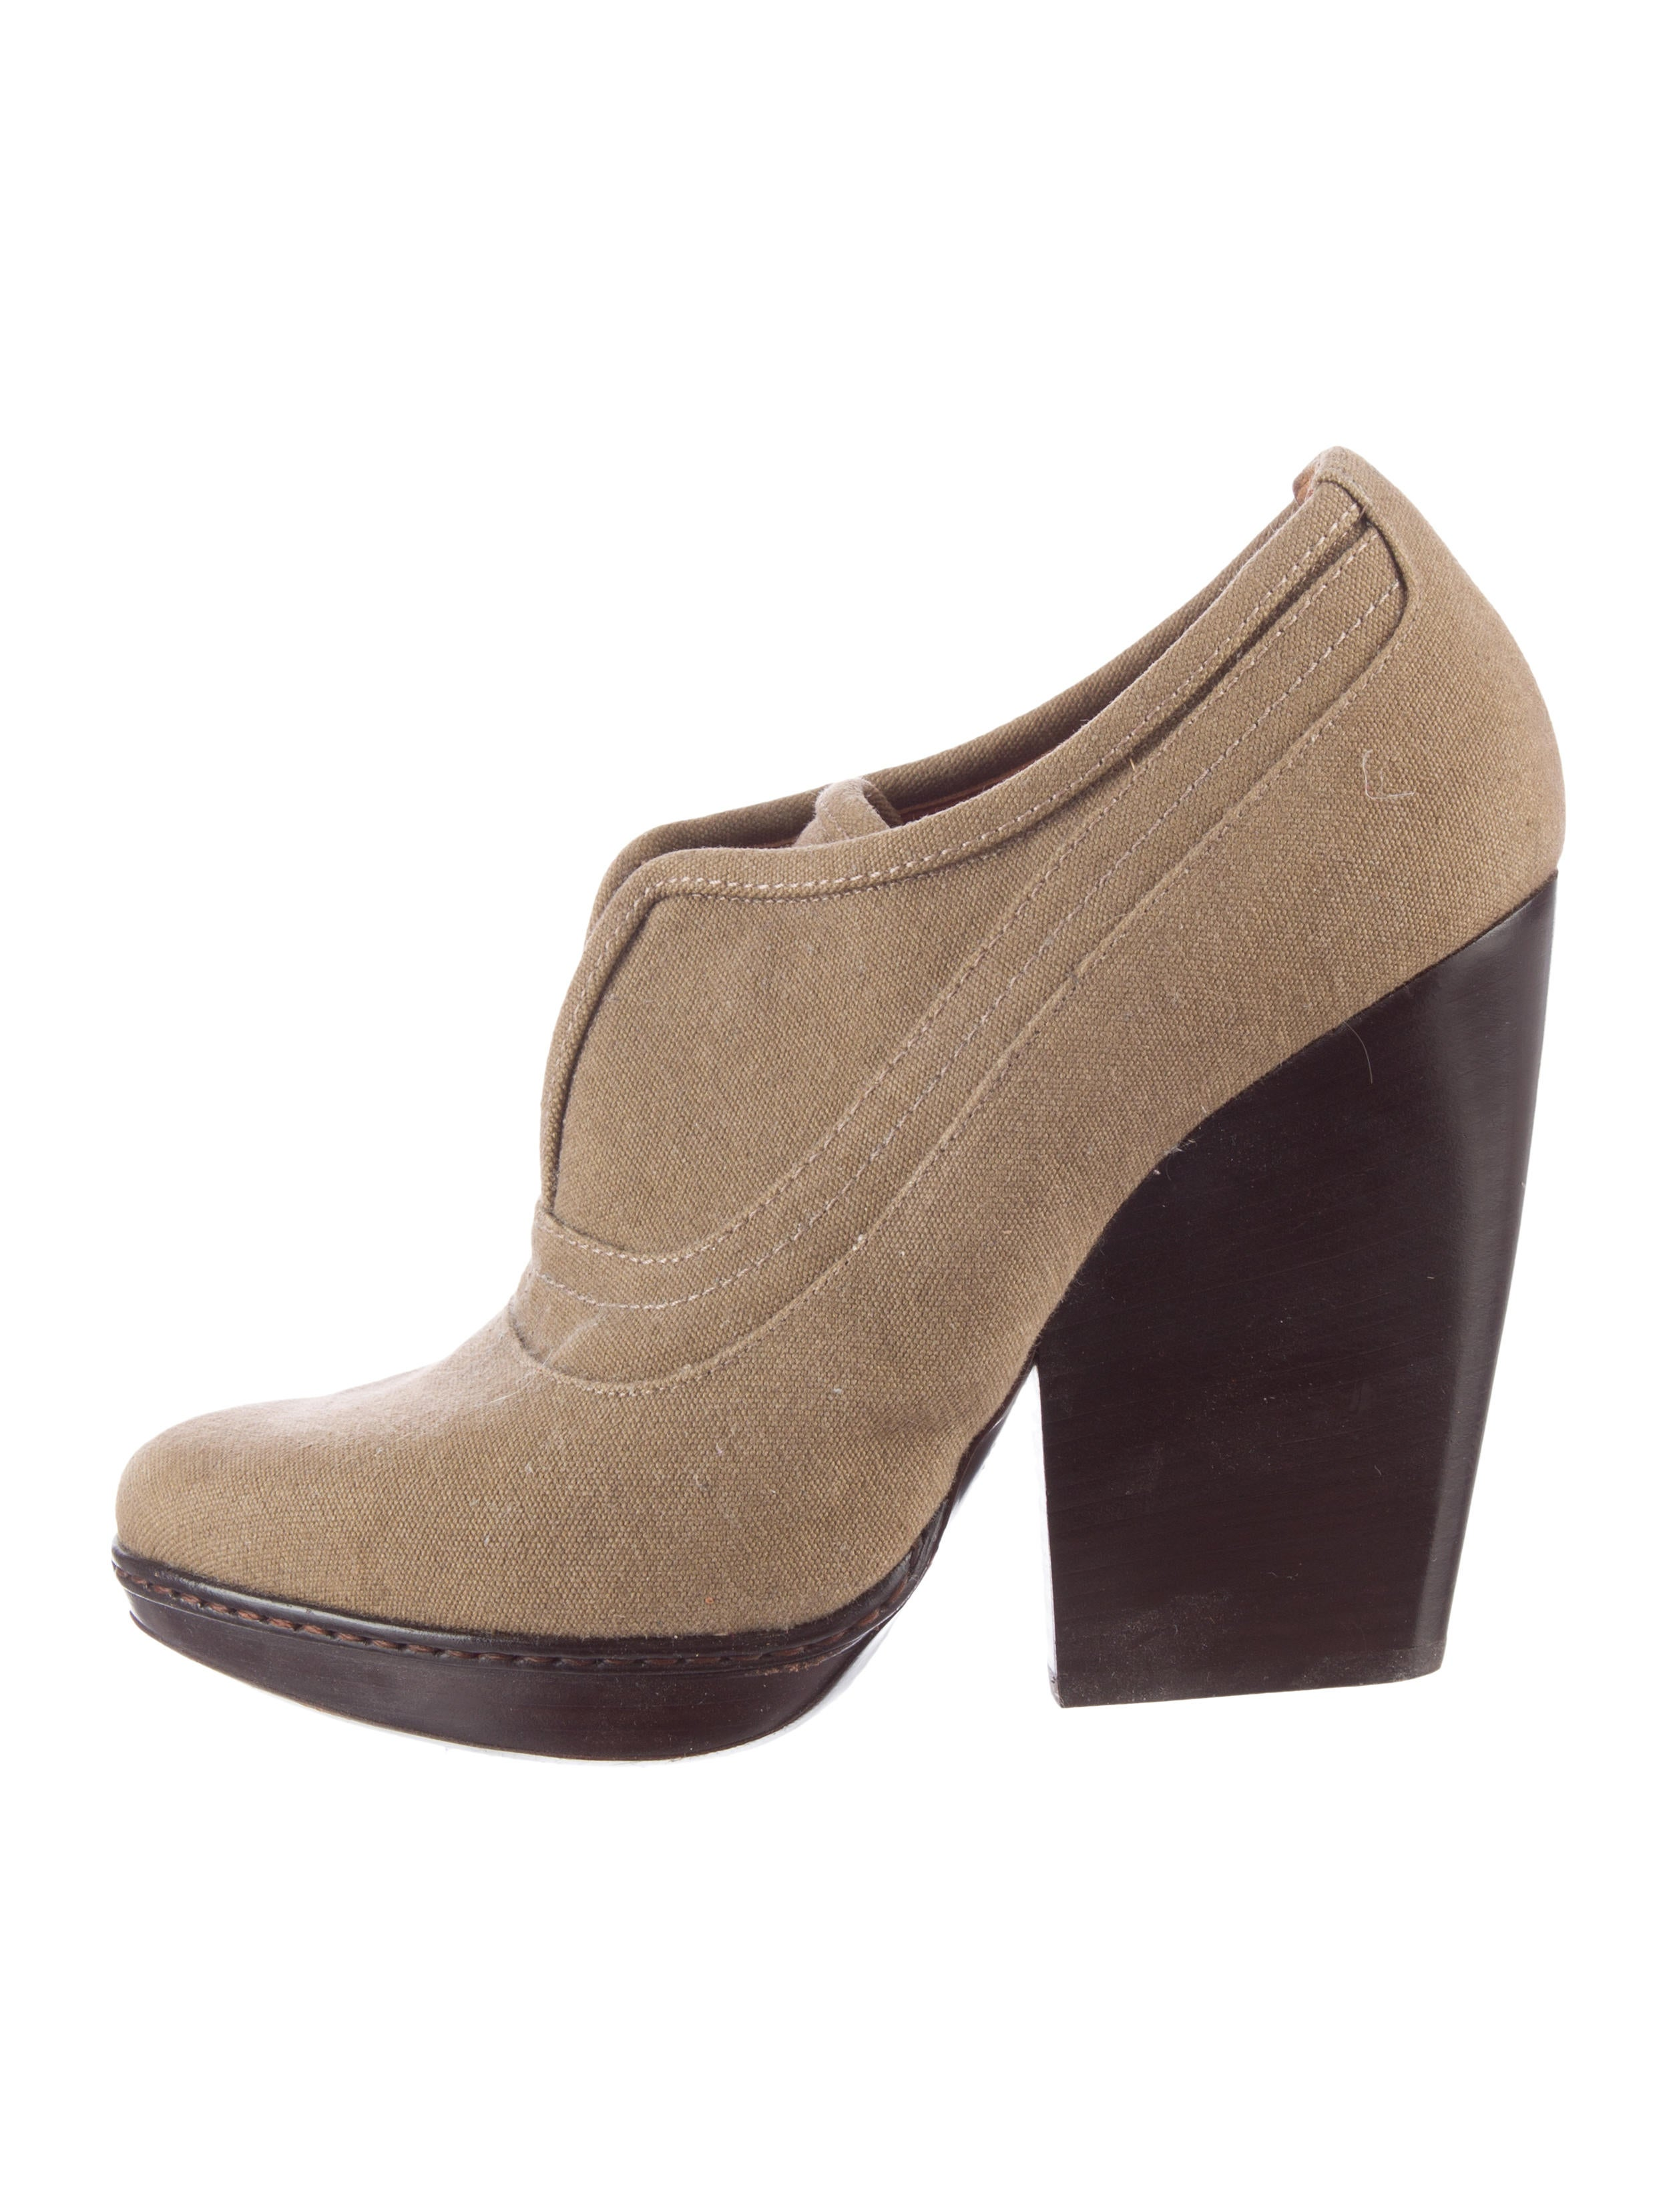 dries noten canvas ankle booties shoes dri33559